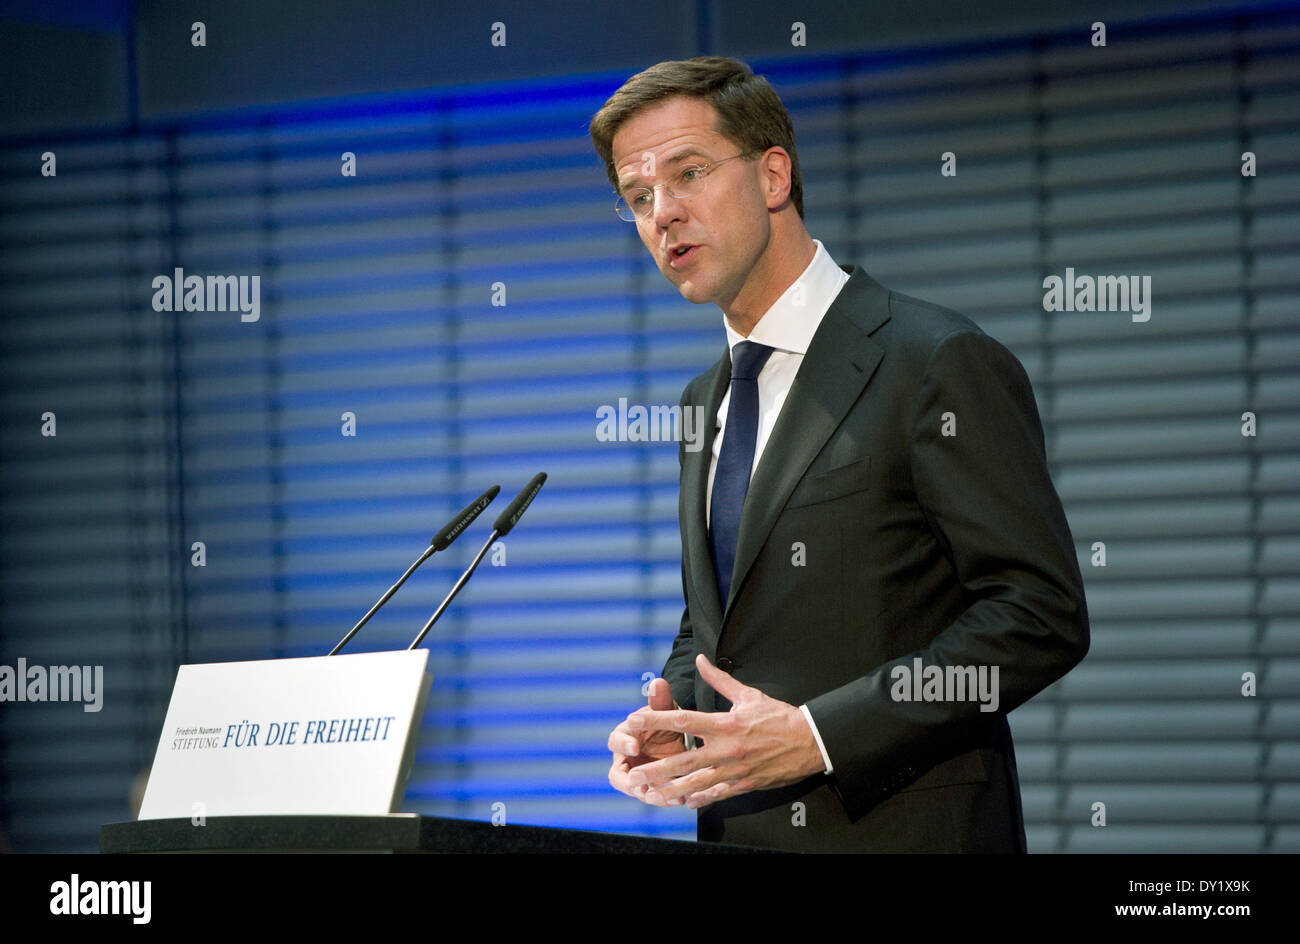 Mark Rutte, Minister-President of the Netherlands, gives the '8th Berlin speech on freedom' (German: 8. Berliner Rede zur Freiheit) in Berlin, Germany, 03 April 2014. Under the title 'Liberalism in Europe' Ruttespoke about necessary changes and reforms to keep being part of the best countries concerning economic and social factors. Photo:  Daniel Naupold/dpa - Stock Image